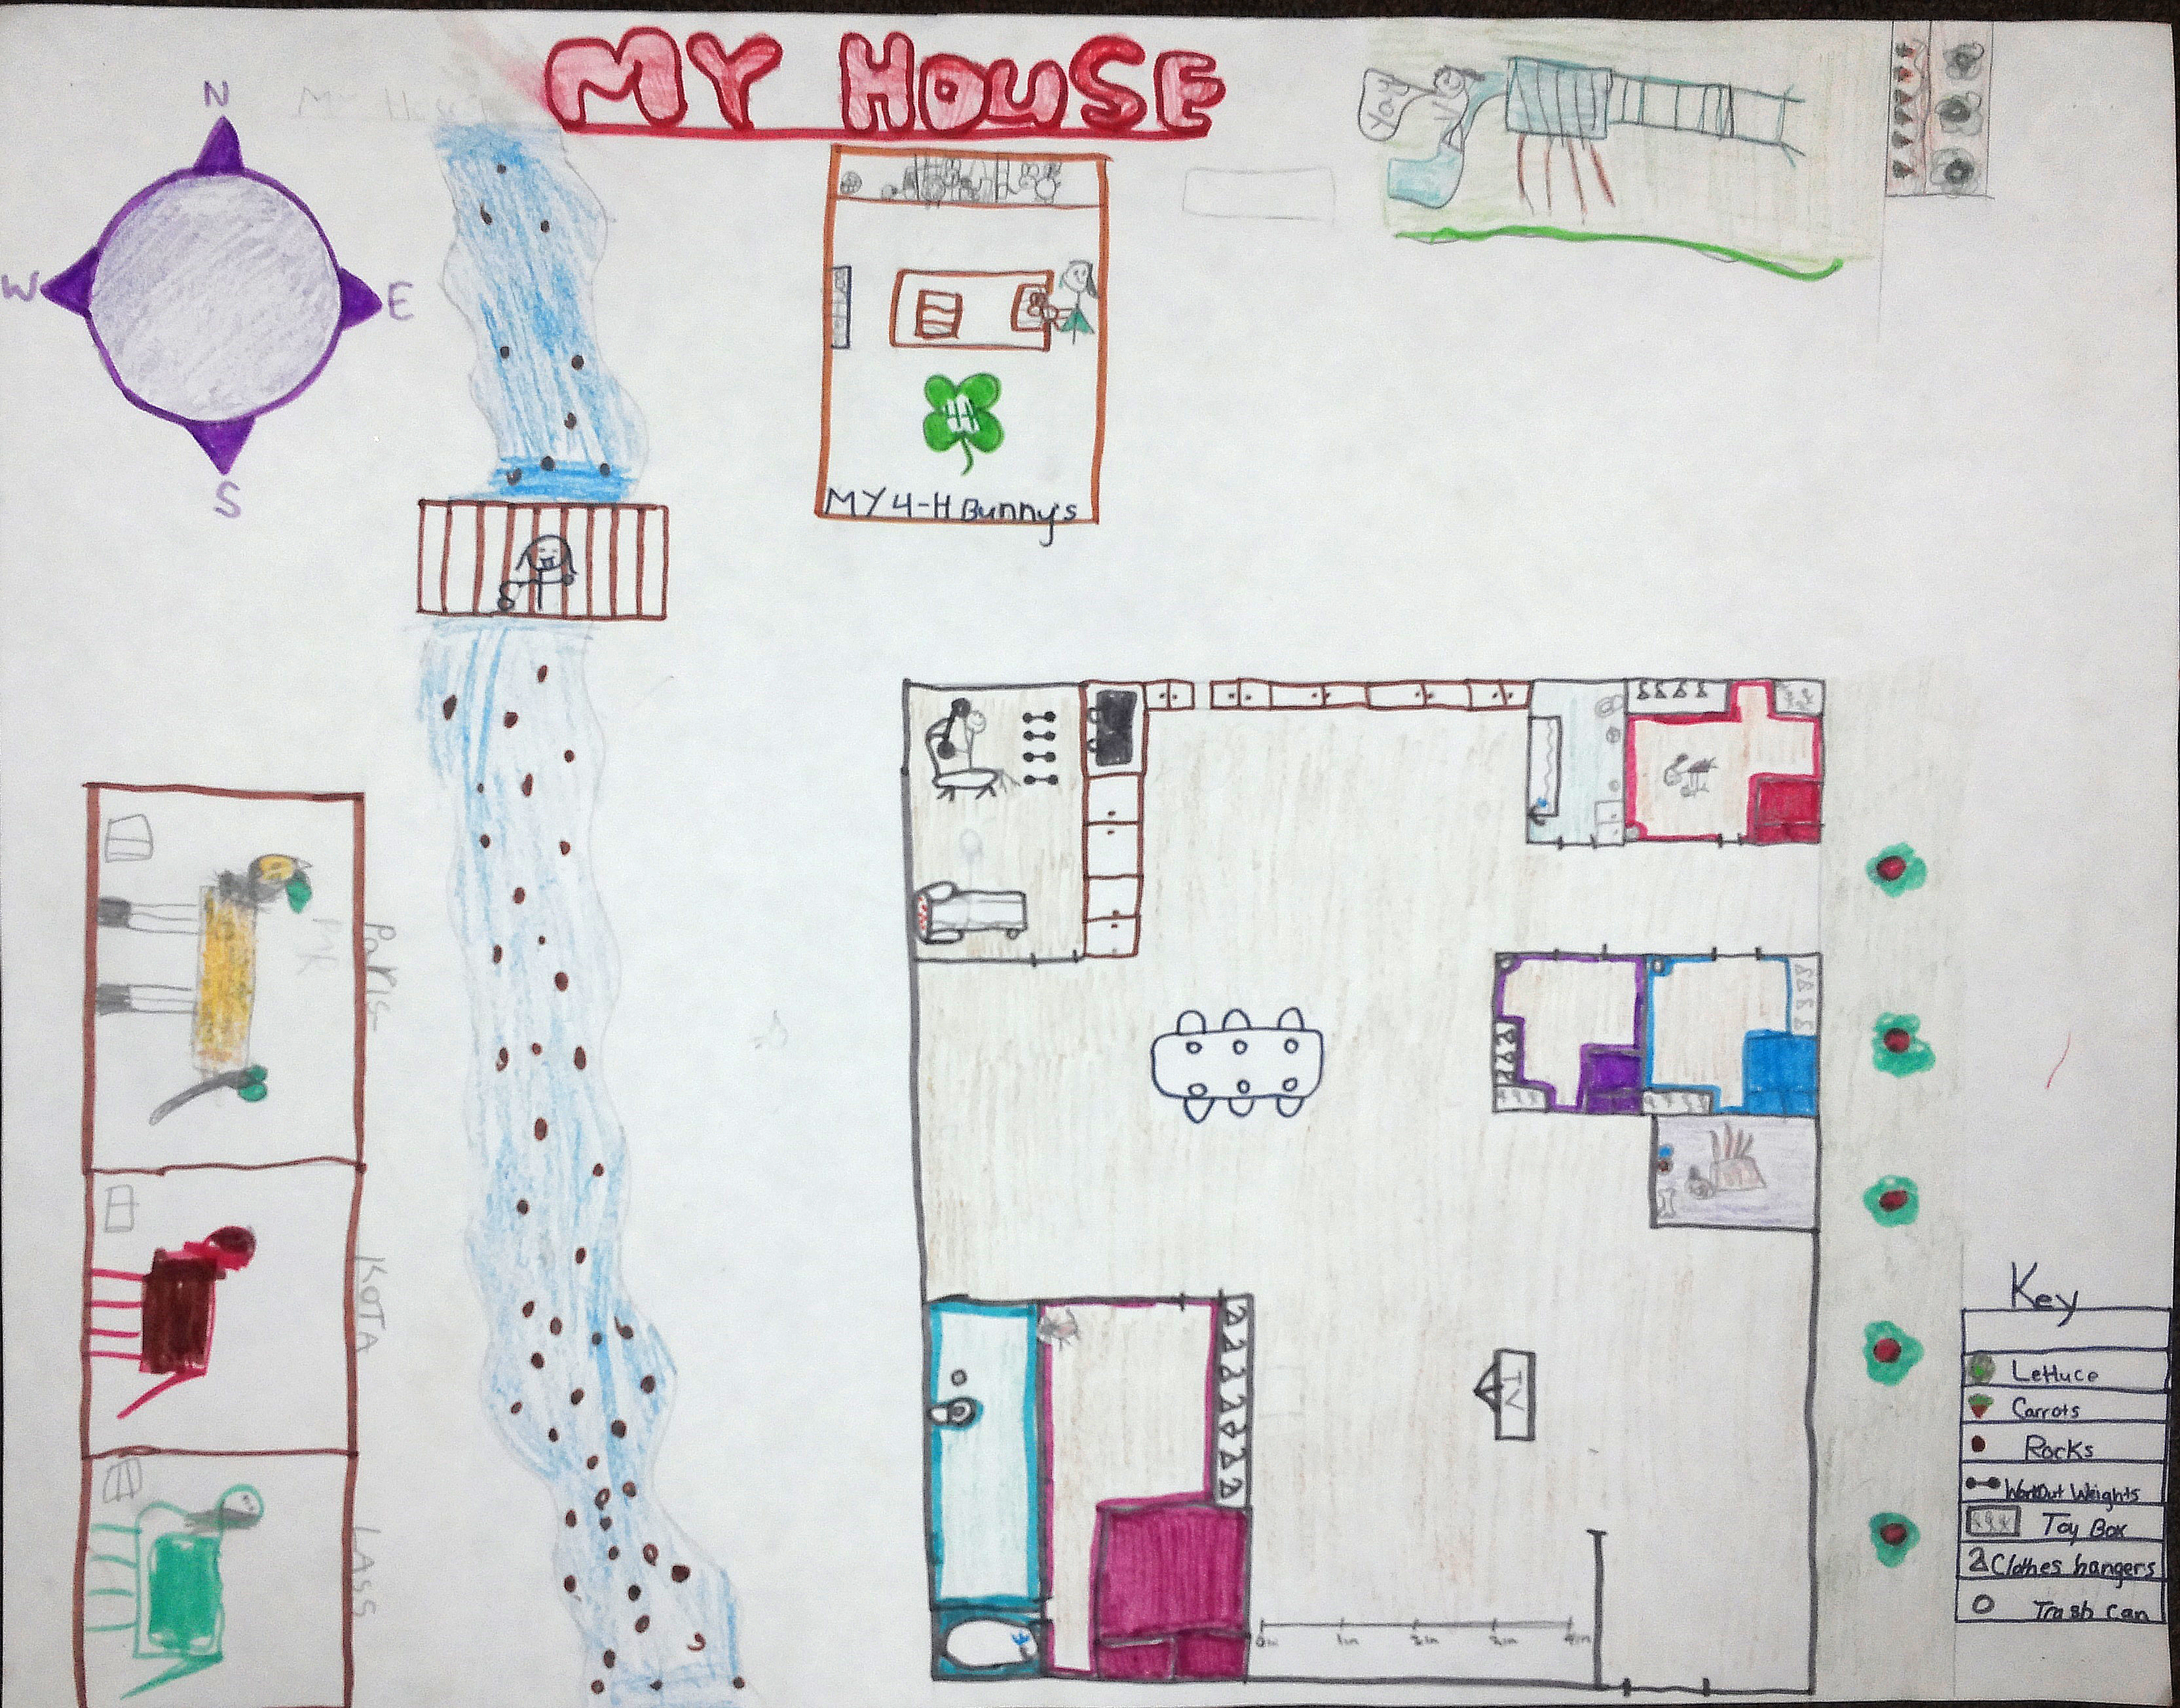 My House Map Student maps show new directions My House Map